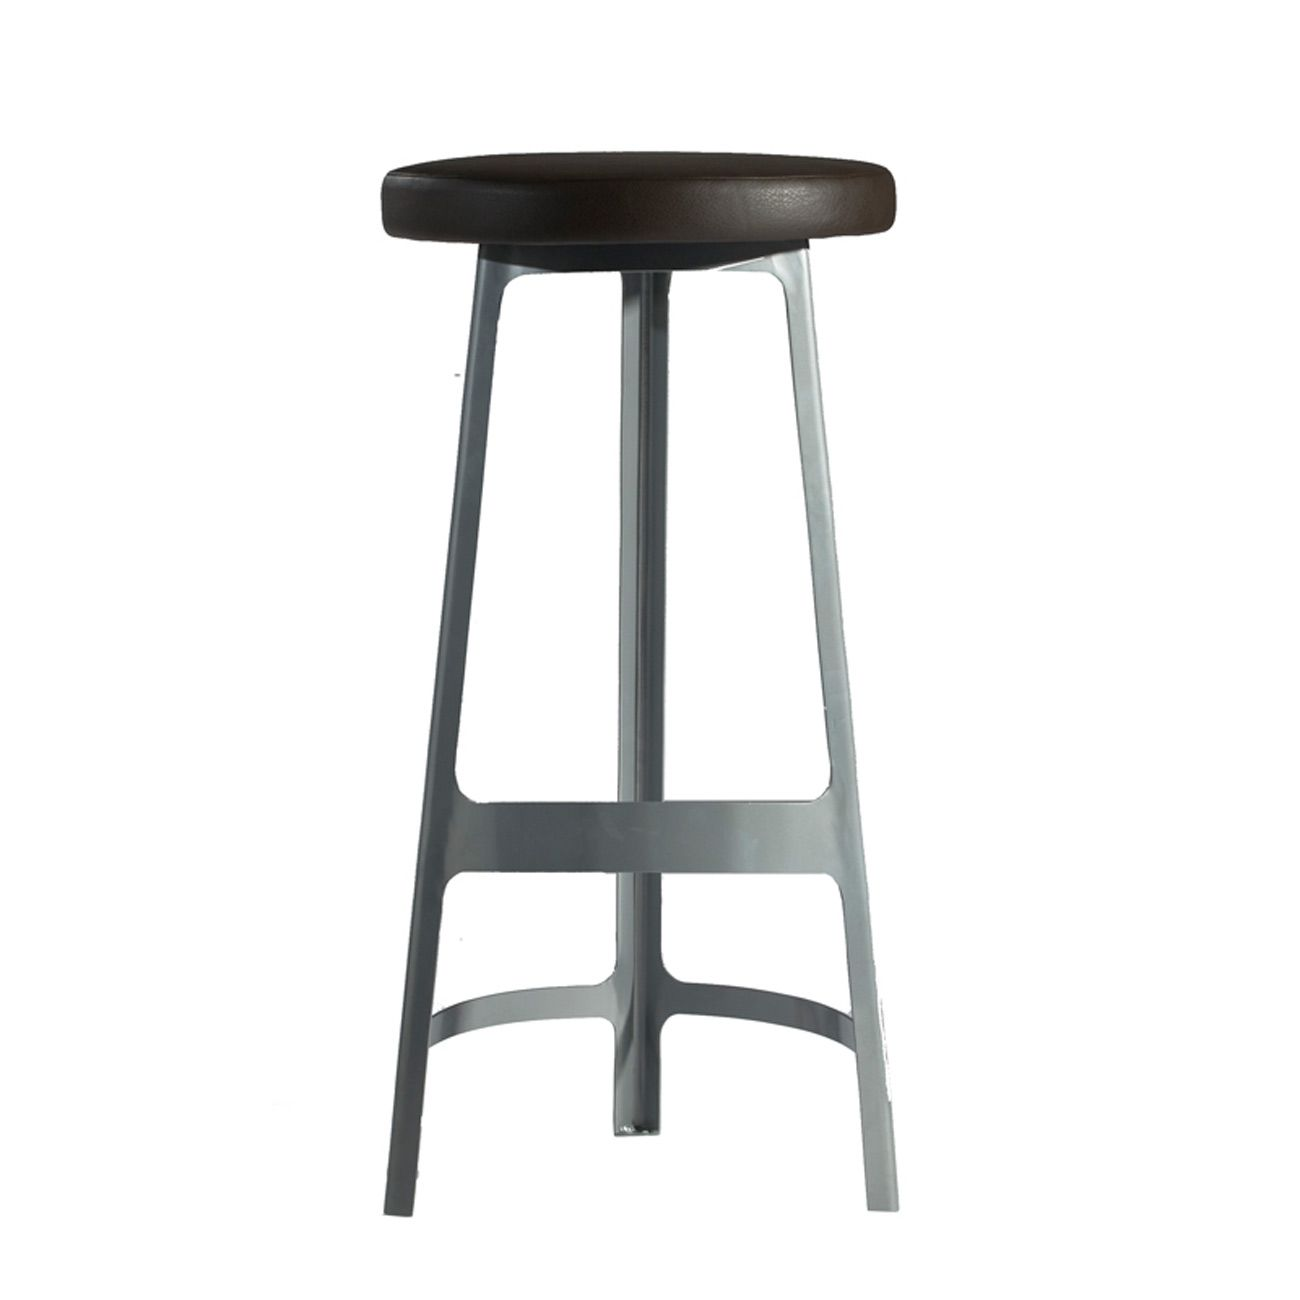 Irieginal Stool - Tall